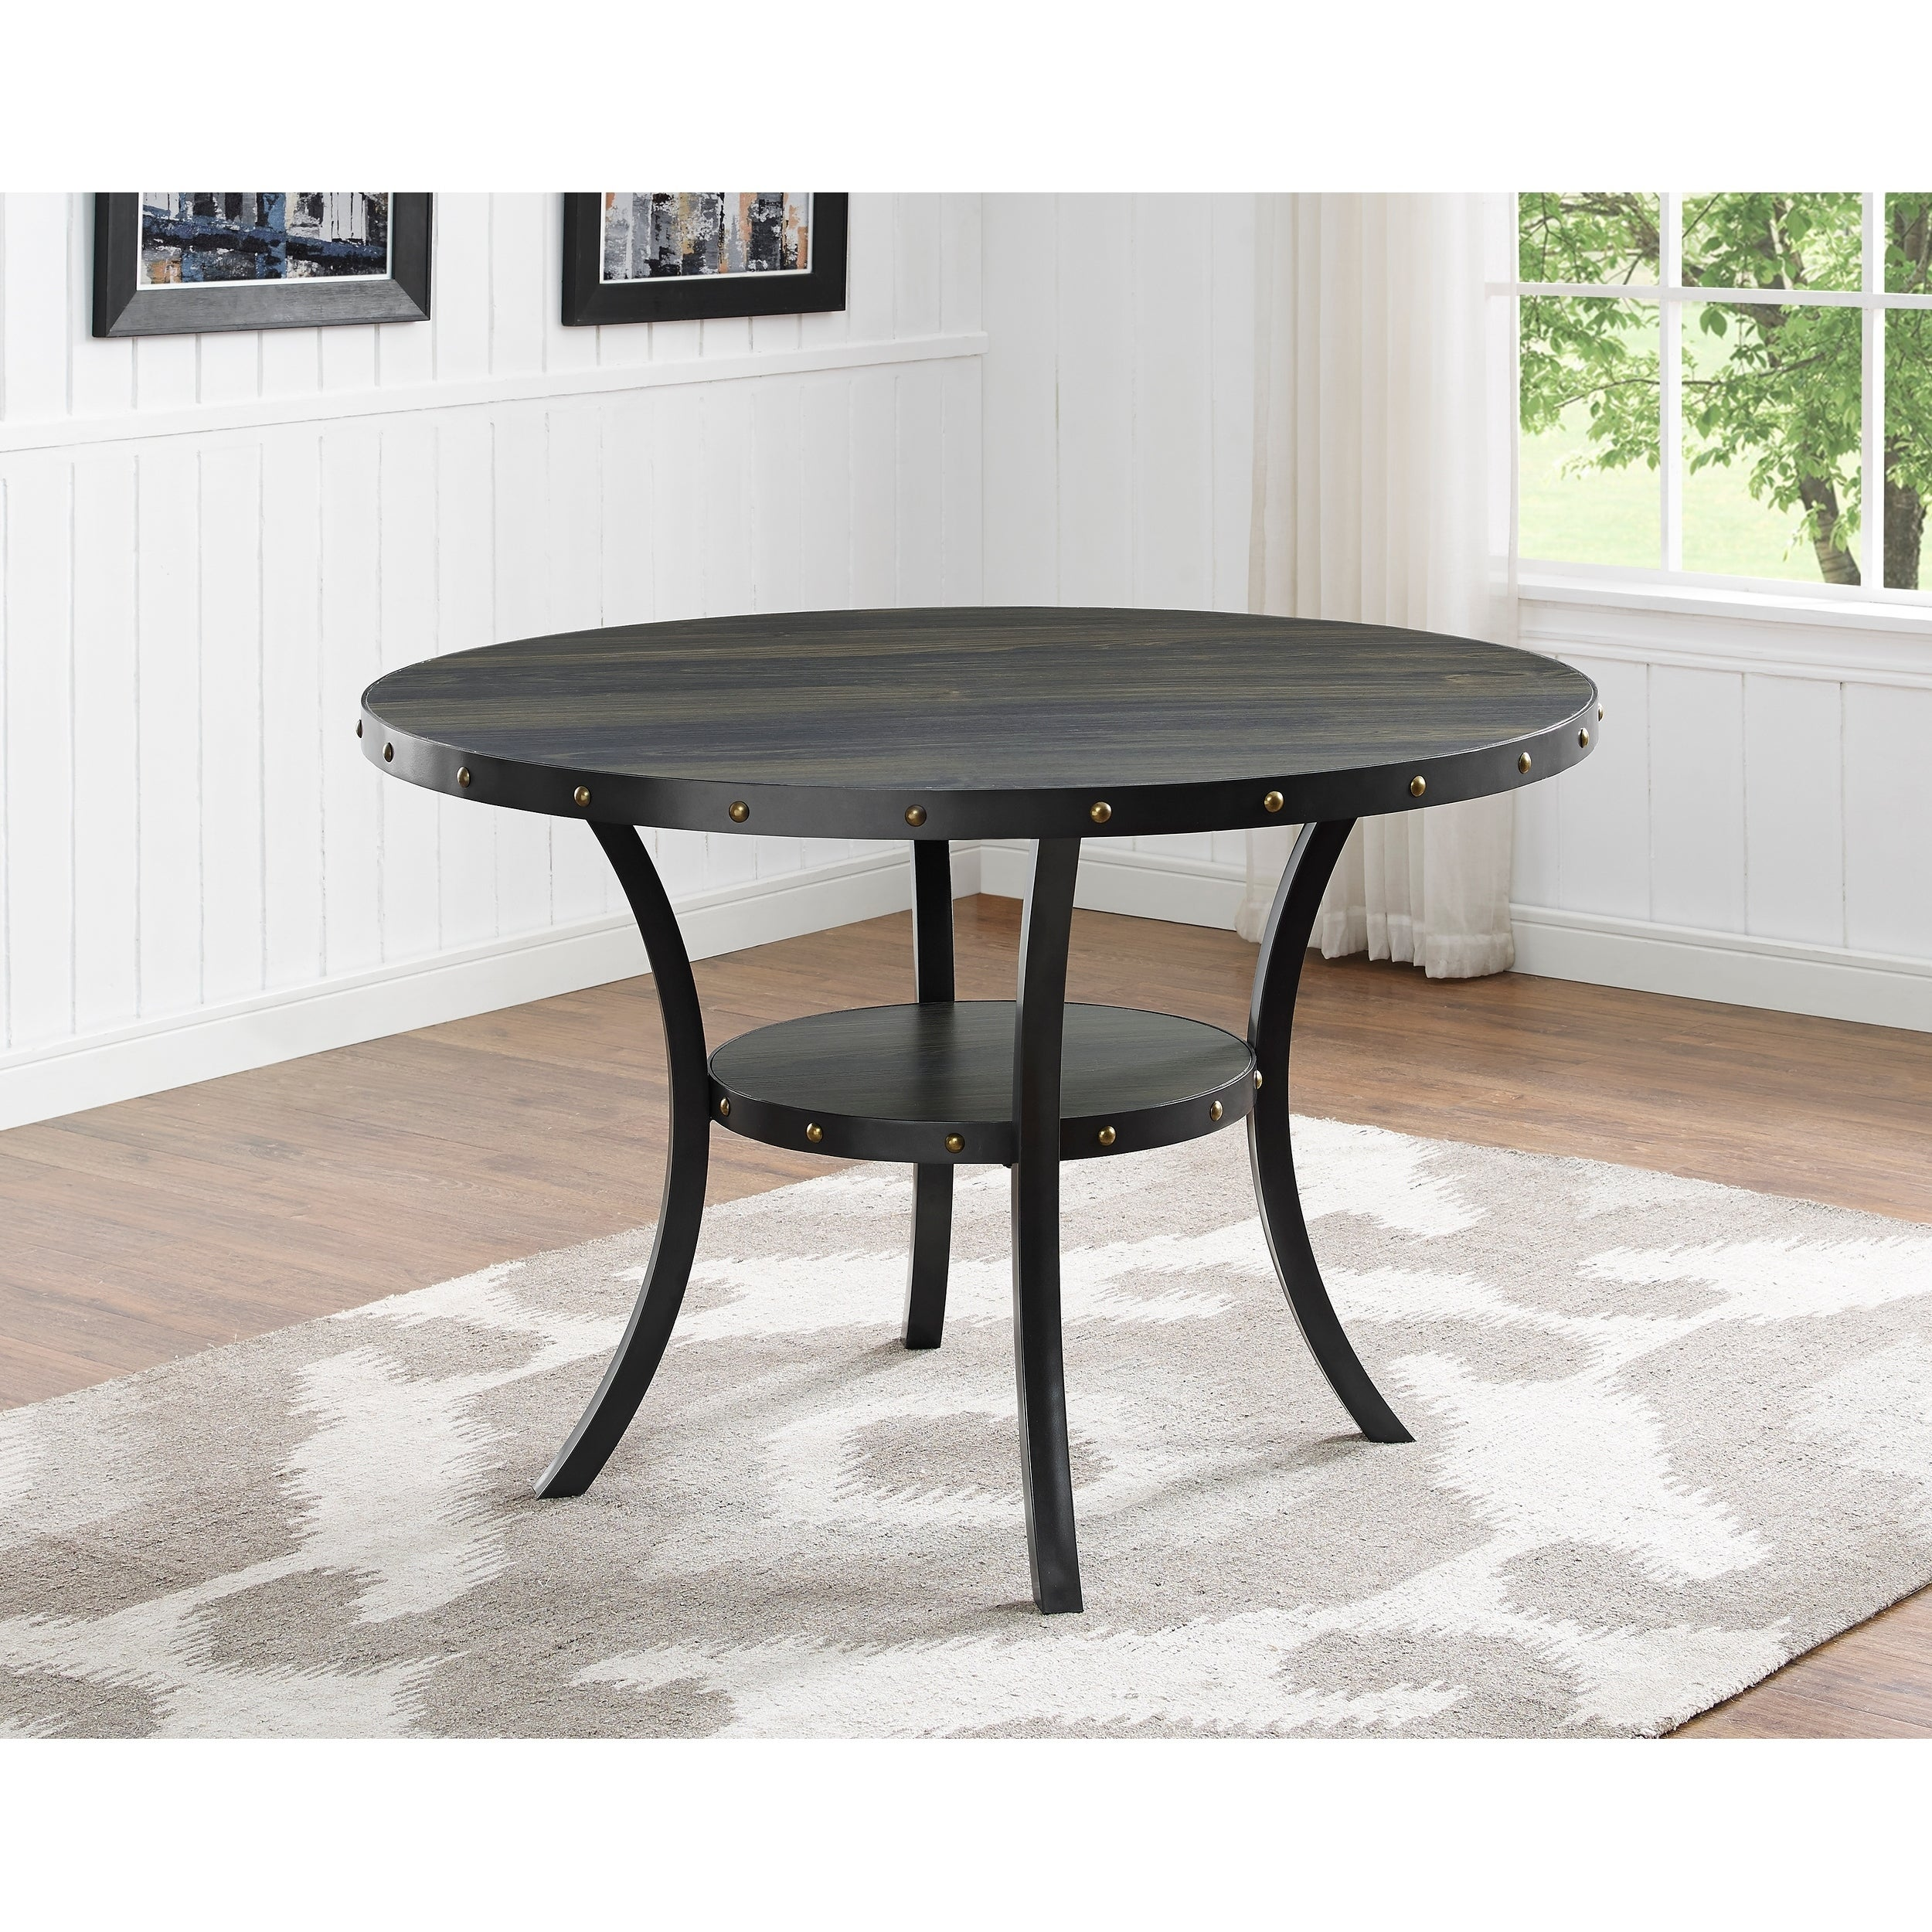 Shop Biony Dining Collection Espresso Wood Nailhead Round Dining Table    Brown   Free Shipping Today   Overstock.com   18270928